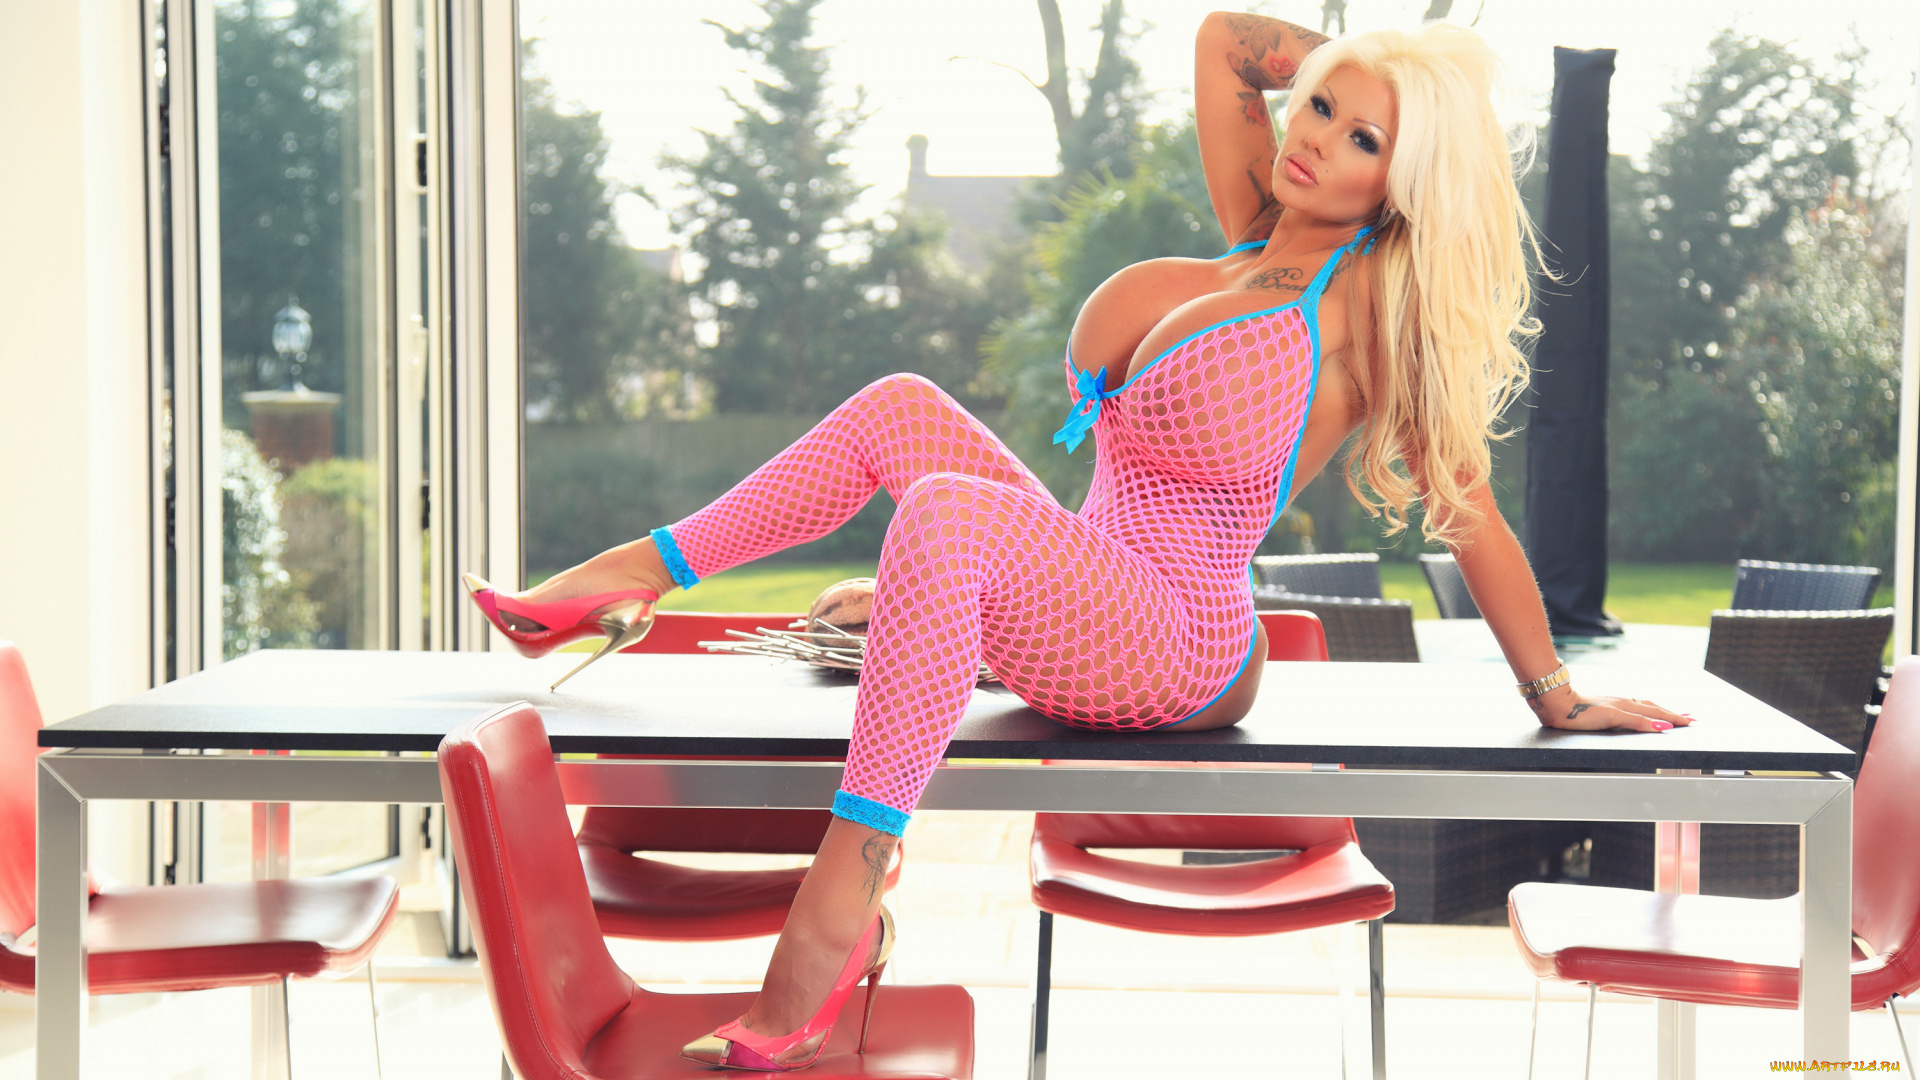 Blonde with giant boobies Candy Charms shows her sweet tattoos № 829529  скачать